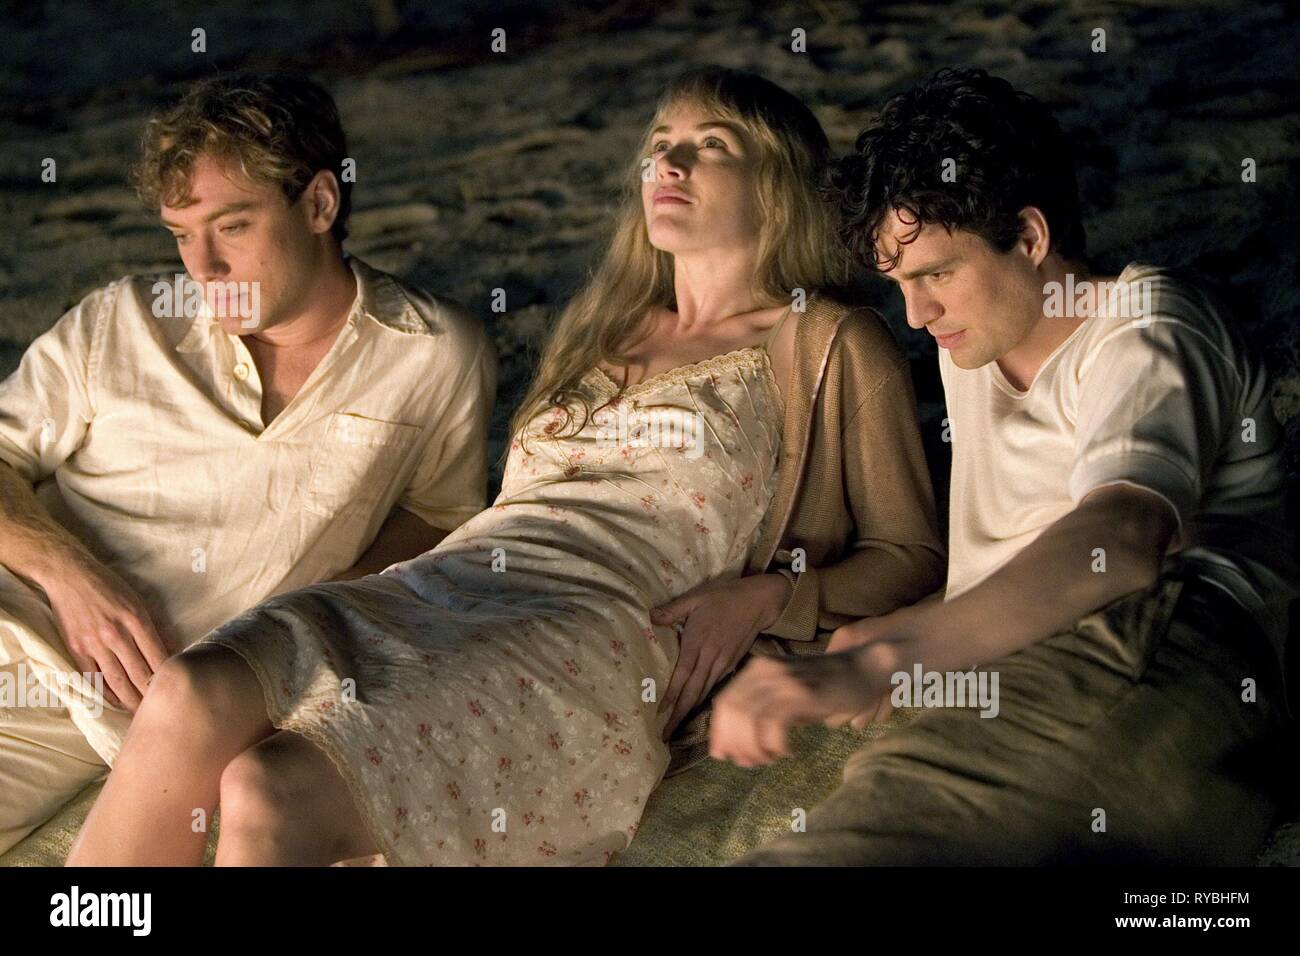 JUDE LAW, KATE WINSLET, MARK RUFFALO, ALL THE KING'S MEN, 2006 - Stock Image